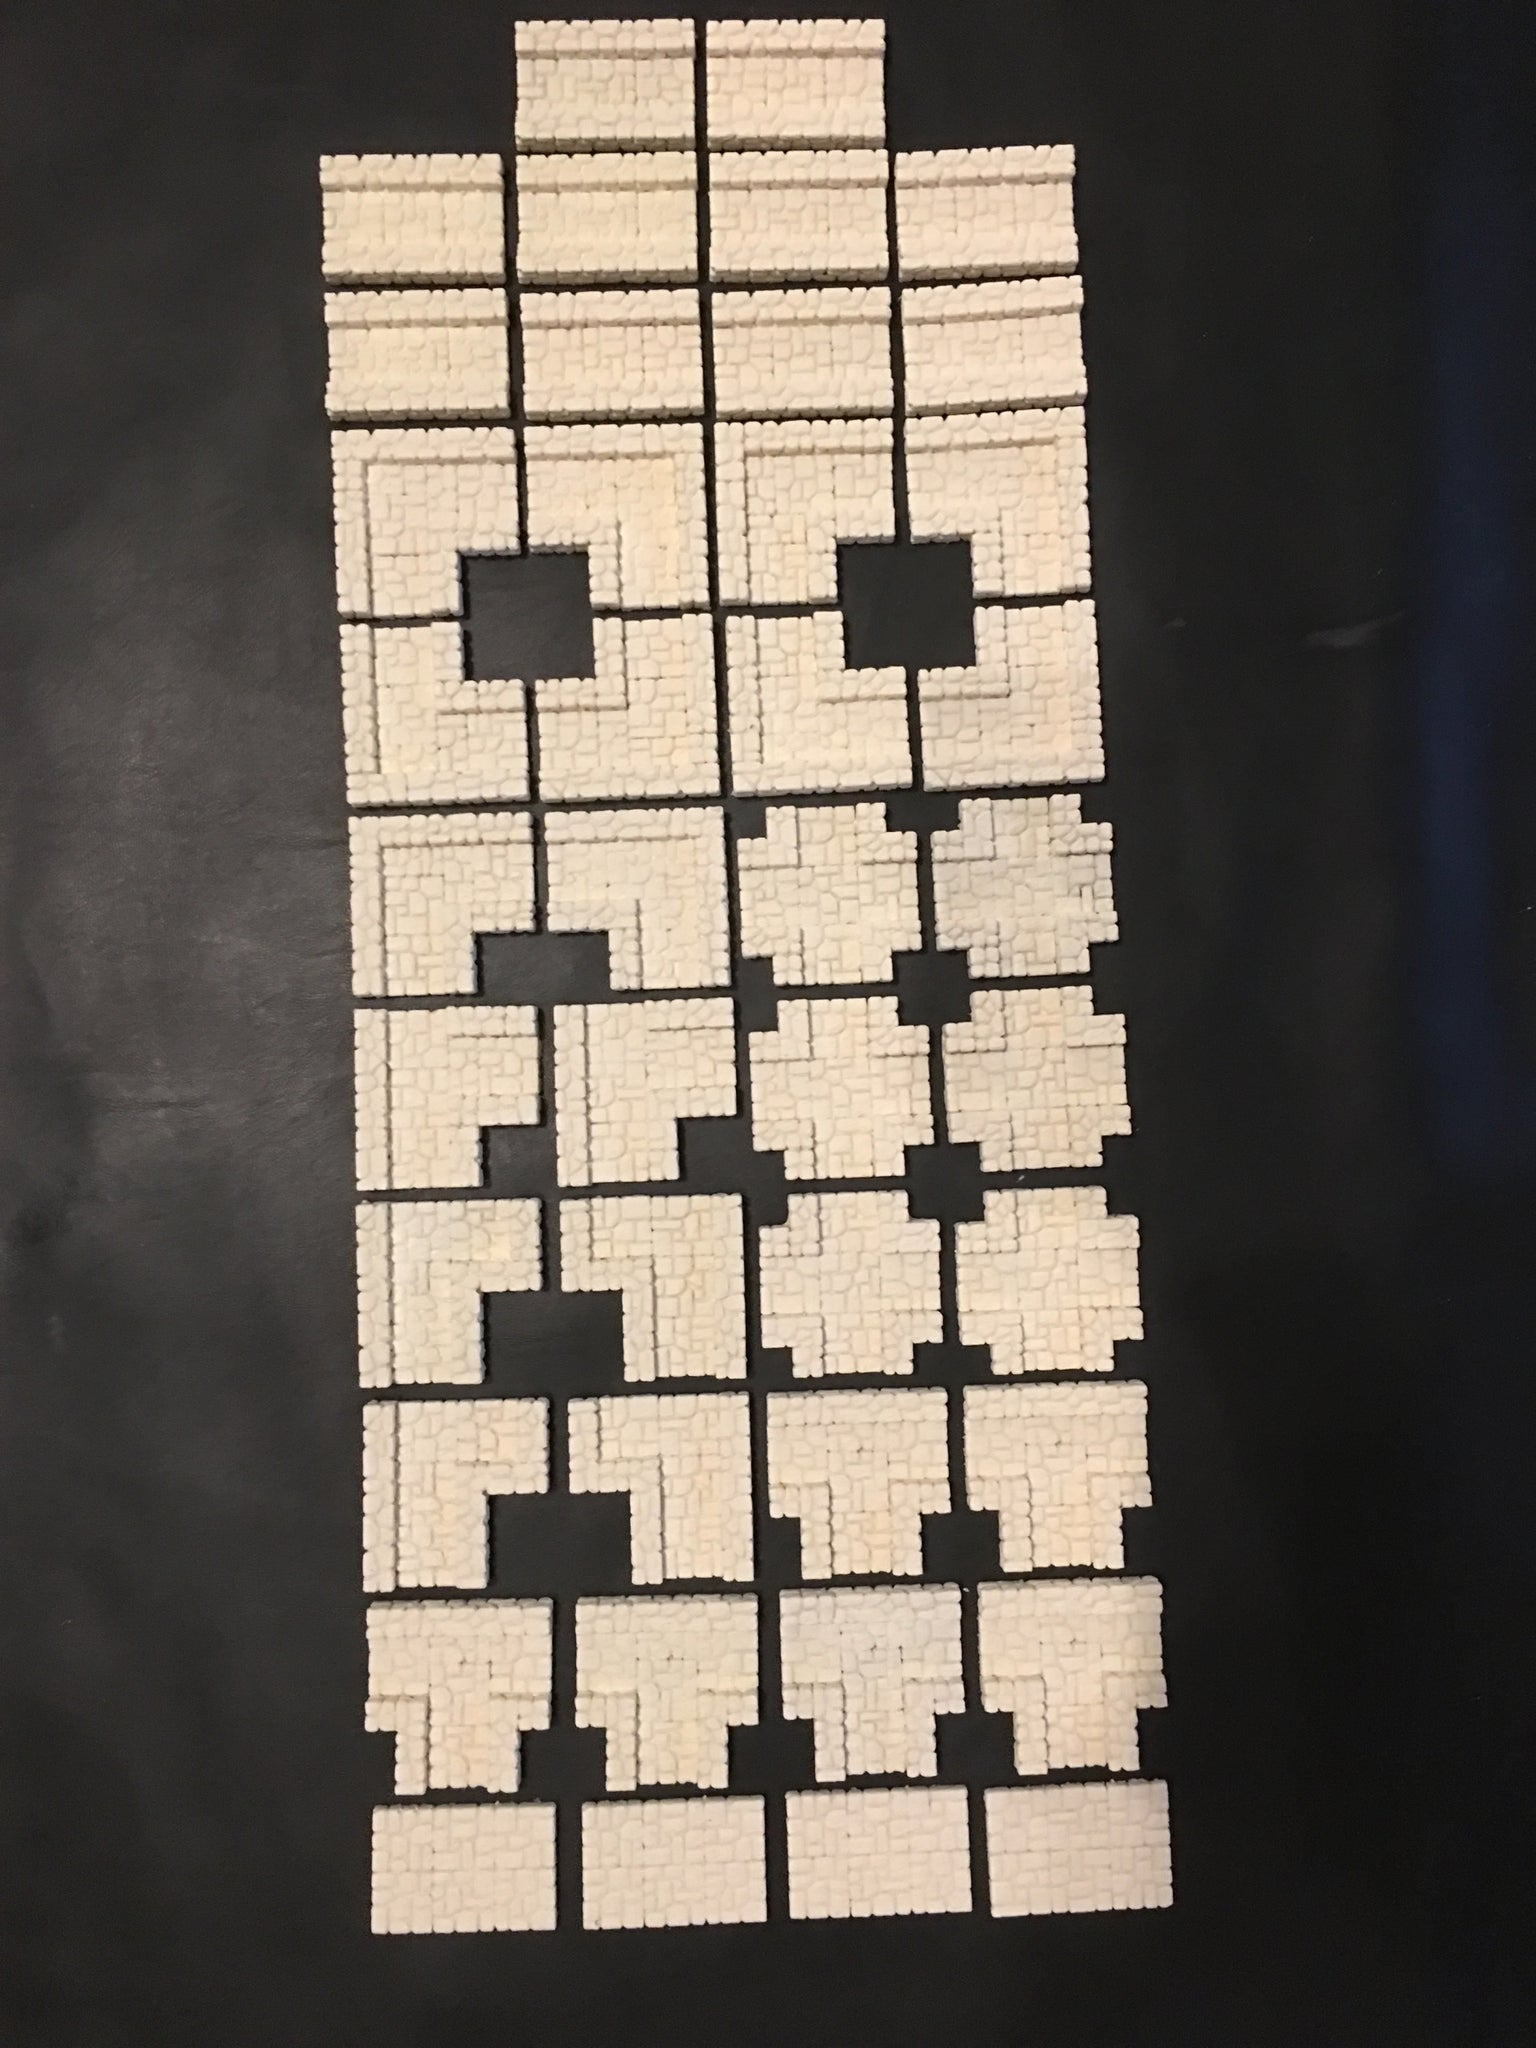 picture about Printable Dungeon Tiles identify Dungeon Epics - Slender Webpages - 2.5D Resin Modular Dungeon